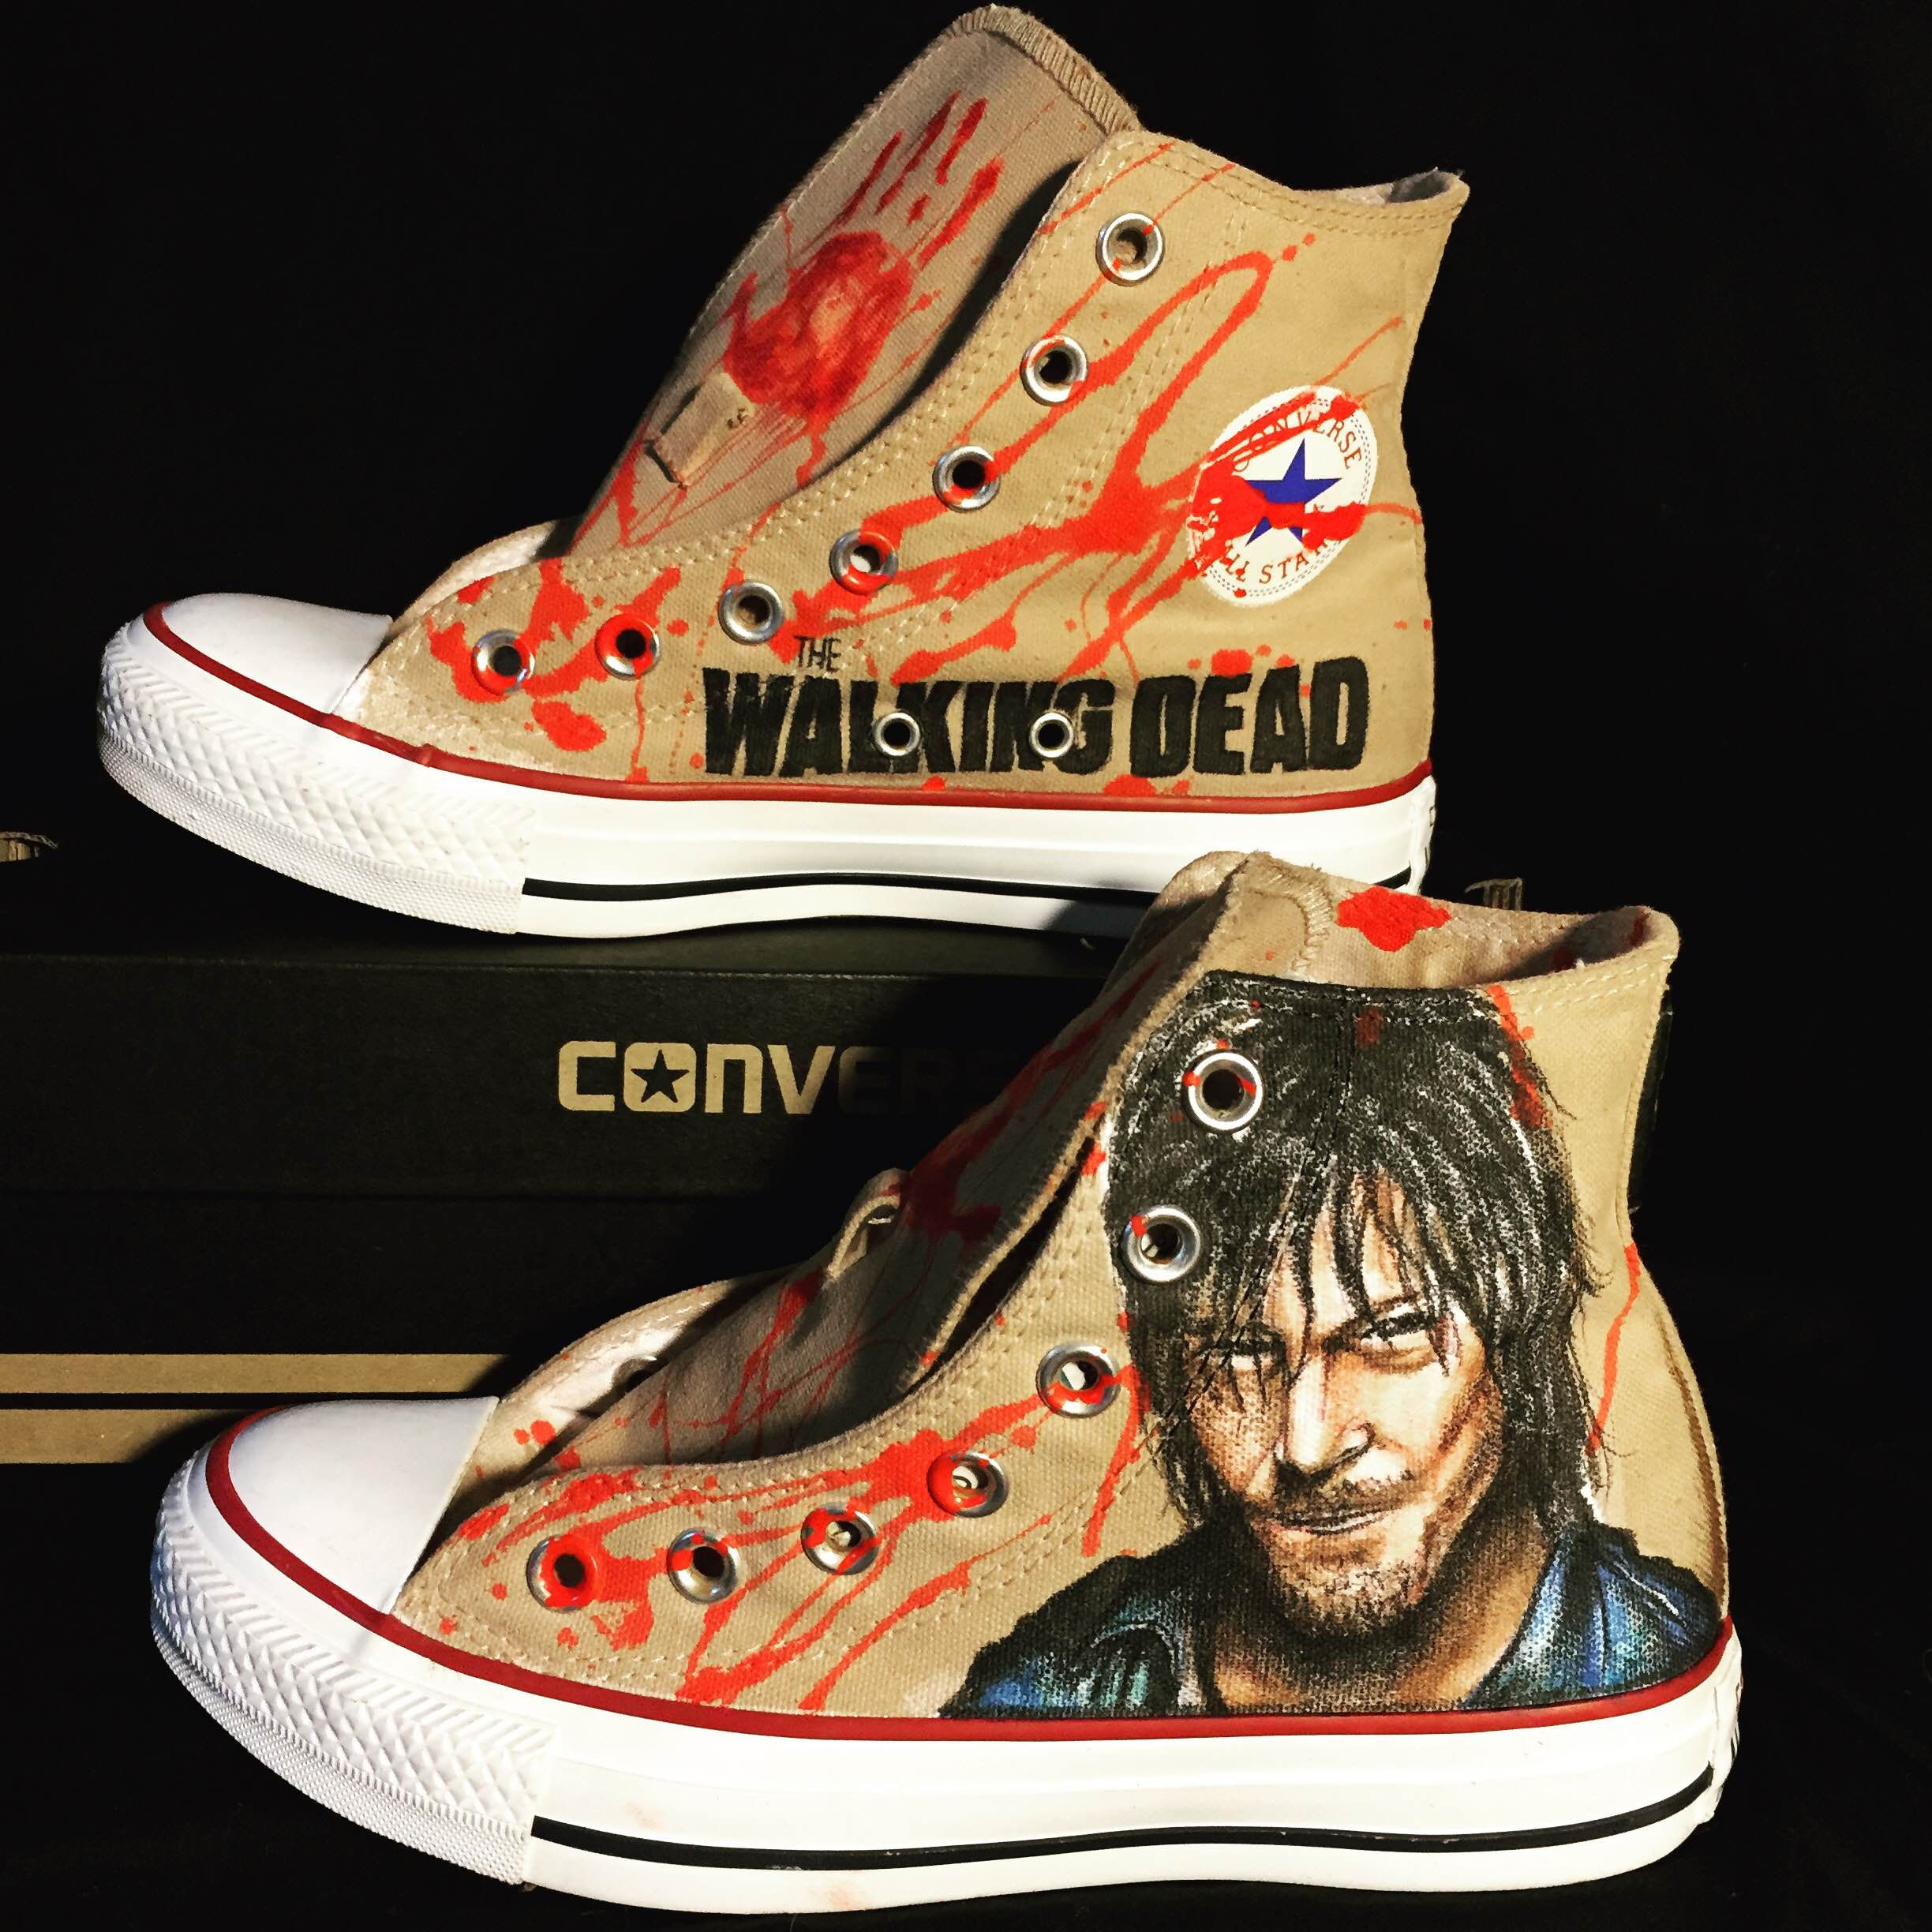 Walking dead converse shoes for sale - Custom made the walking dead hand drawn daryl dixon converse